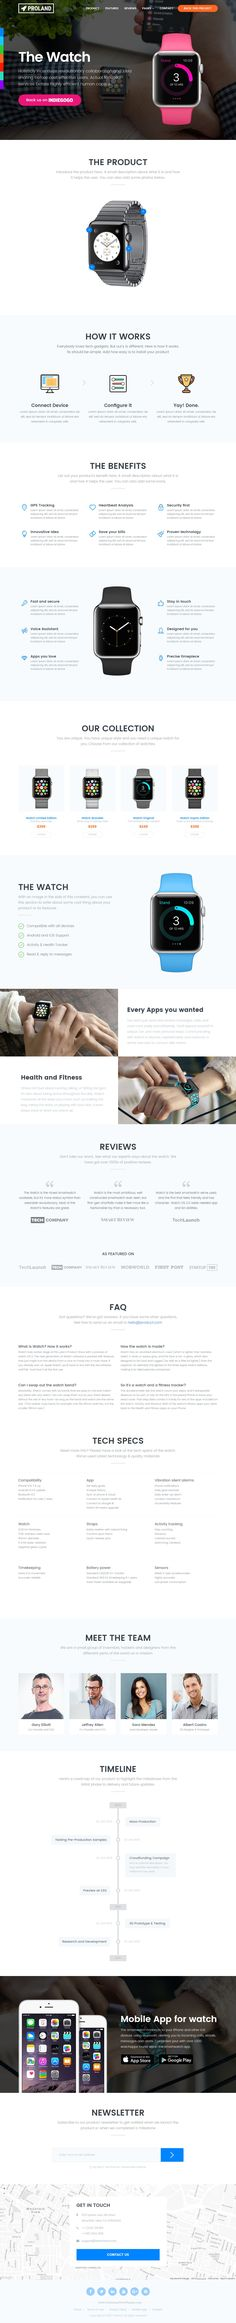 Launching a new product? Looking for a kick-ass landing page to market your product? Download Proland is a creative Product #LandingPage #Template built with HTML5 and #Bootstrap integrated with Paypal, Mailchimp and Email.